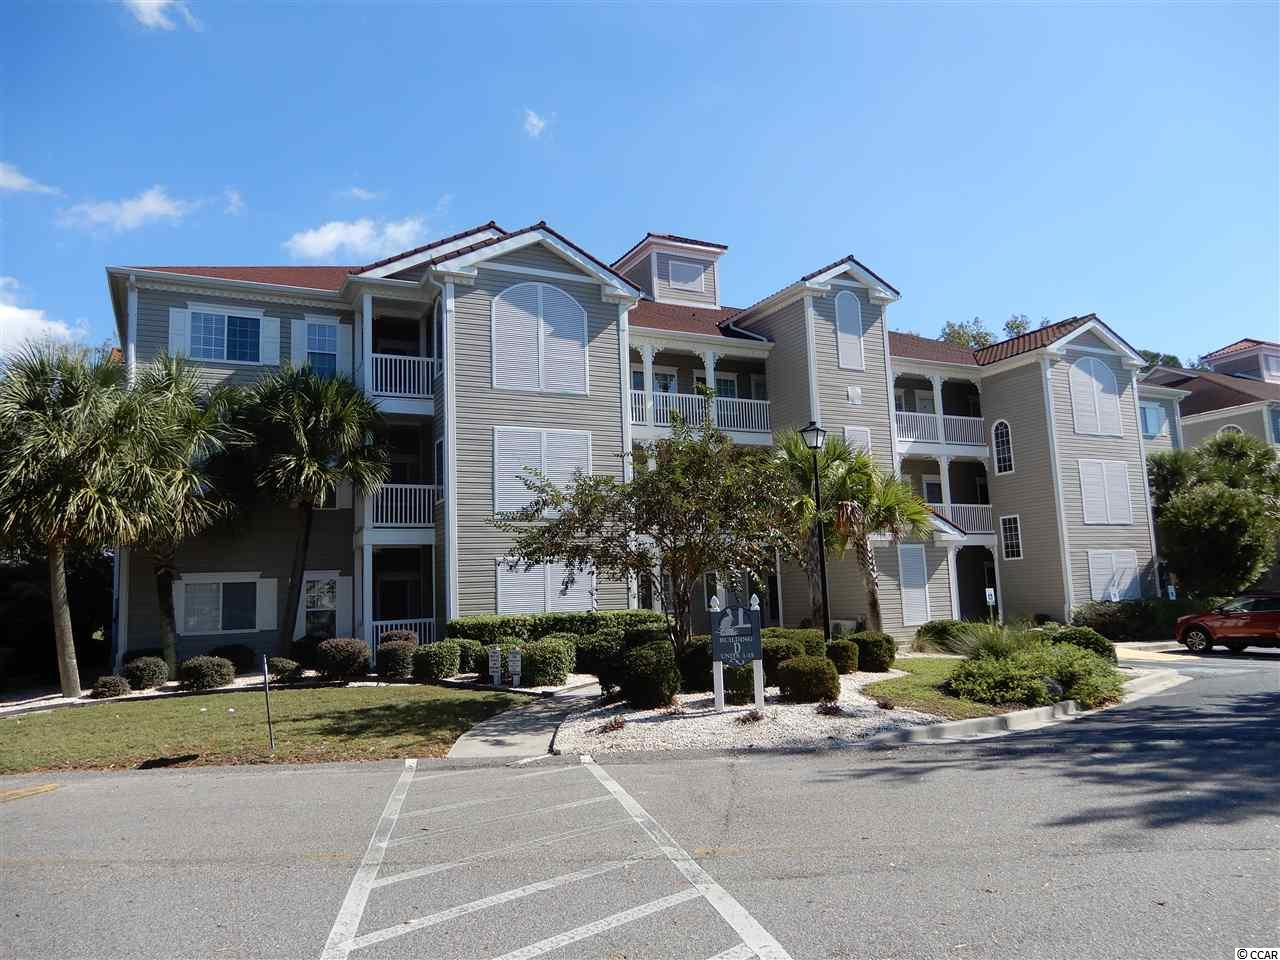 Welcome to Harbourfront Villas in the Intracoastal community of Coquina Harbor.  This 2 bedroom and 2 full bath condo comes beautifully furnished and maintained.  Enjoy this third floor condo and it's cathedral ceilings in living room and master bedroom.  Relax on your screened porch which overlooks the golf course and pond with lots of trees and nature.  Elevator in building. Located in Little River which is only a few miles to the beaches.  All shopping, restaurants and golf are right here.  The pool and hot tub awaits you just a few steps from your door which overlooks the marina with the most gorgeous views.